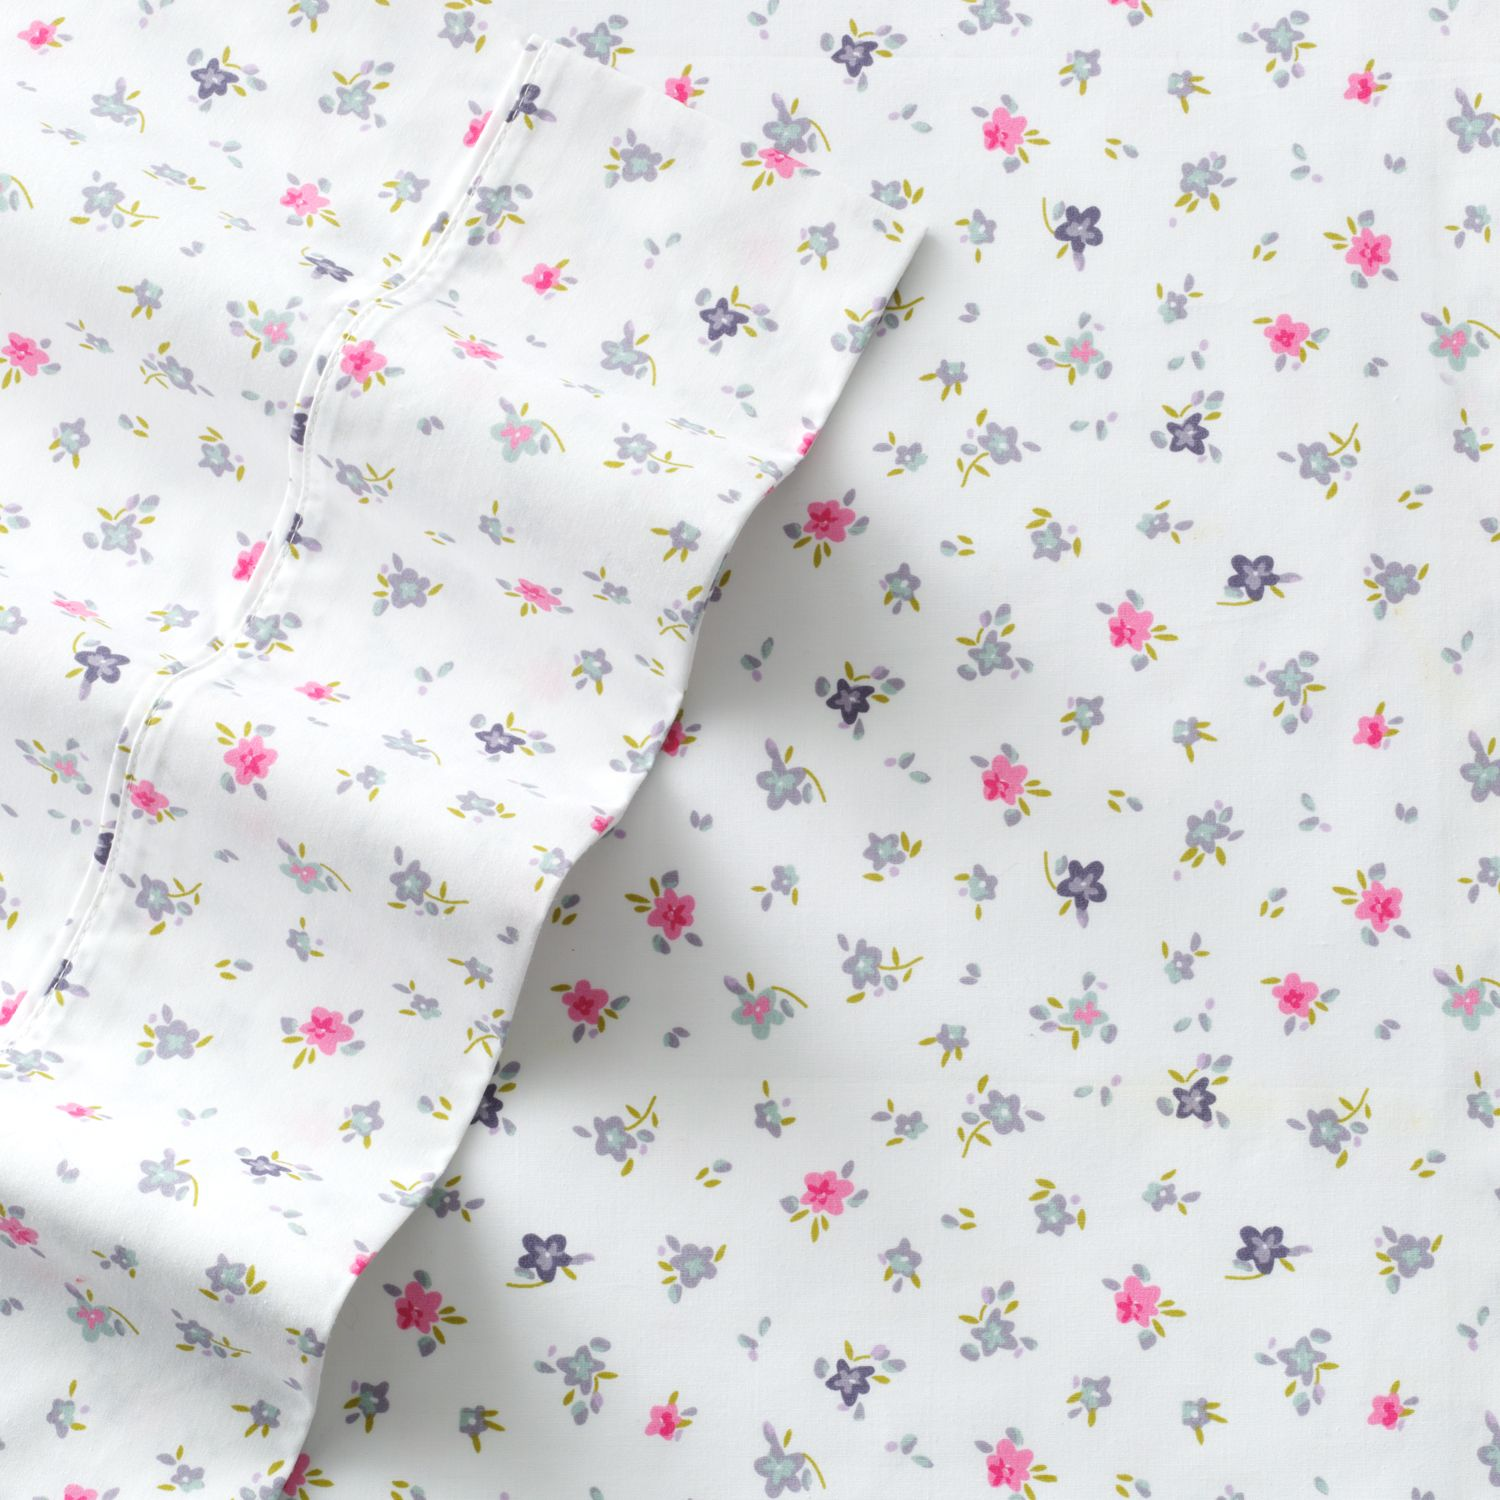 Kohls Full Size Flannel Sheets Frozen Olaf Flannel Sheet Set By Jumping Beans Home Classics